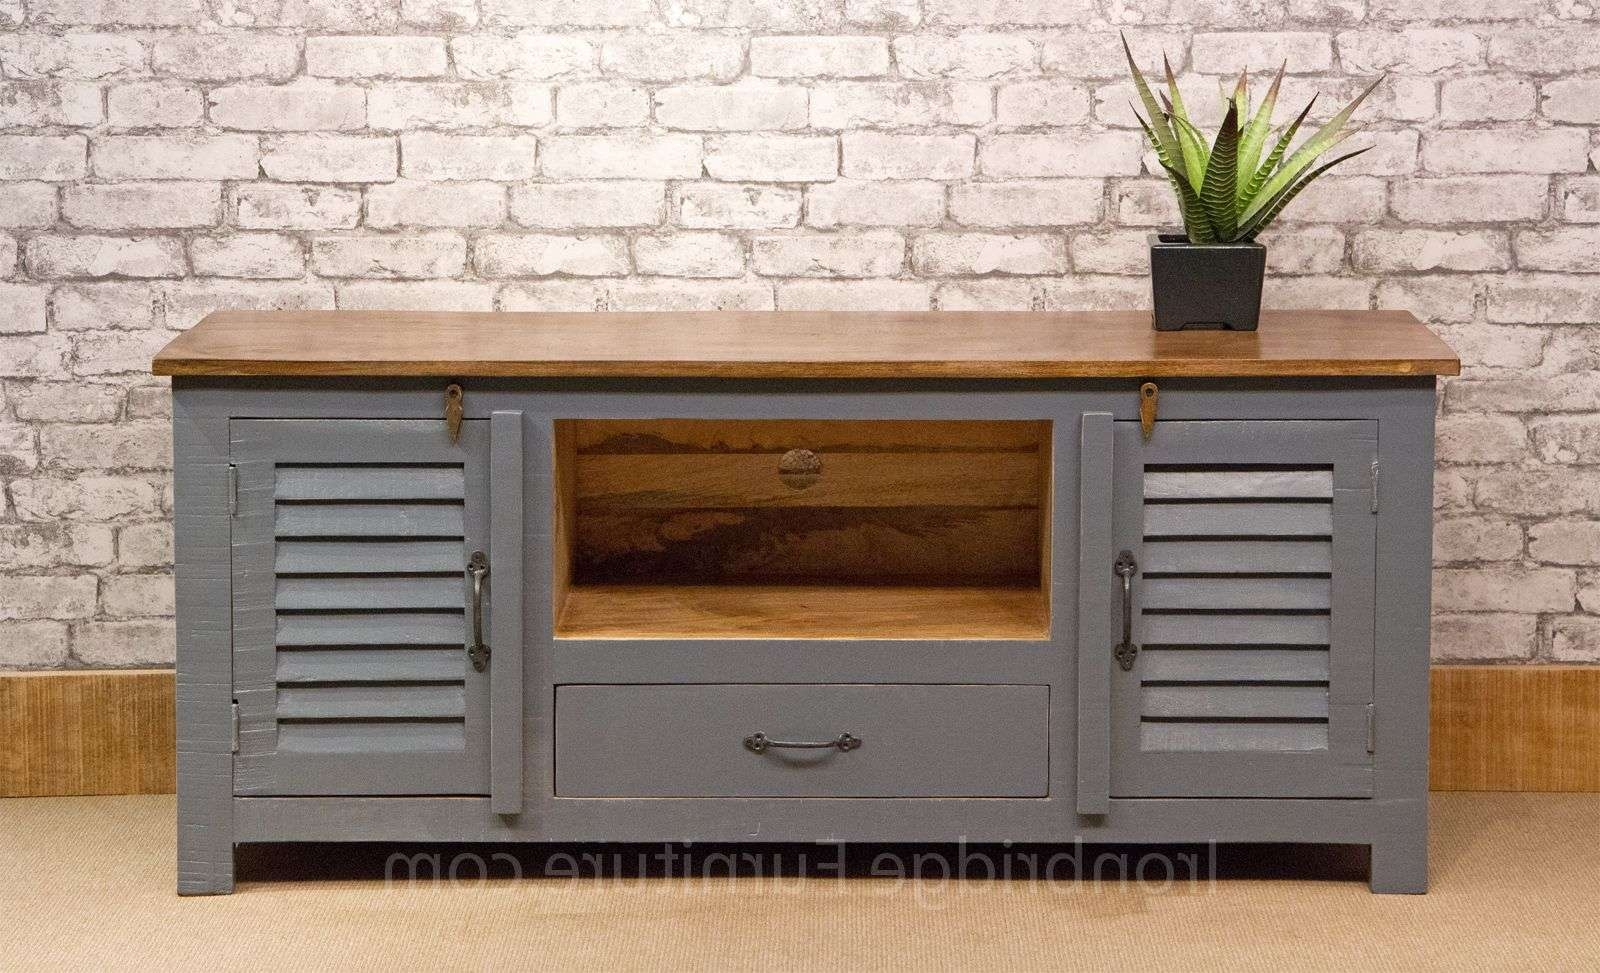 518 Vintage Style Painted Long Tv Cabinet – Dusky Grey In Vintage Style Tv Cabinets (Gallery 2 of 20)